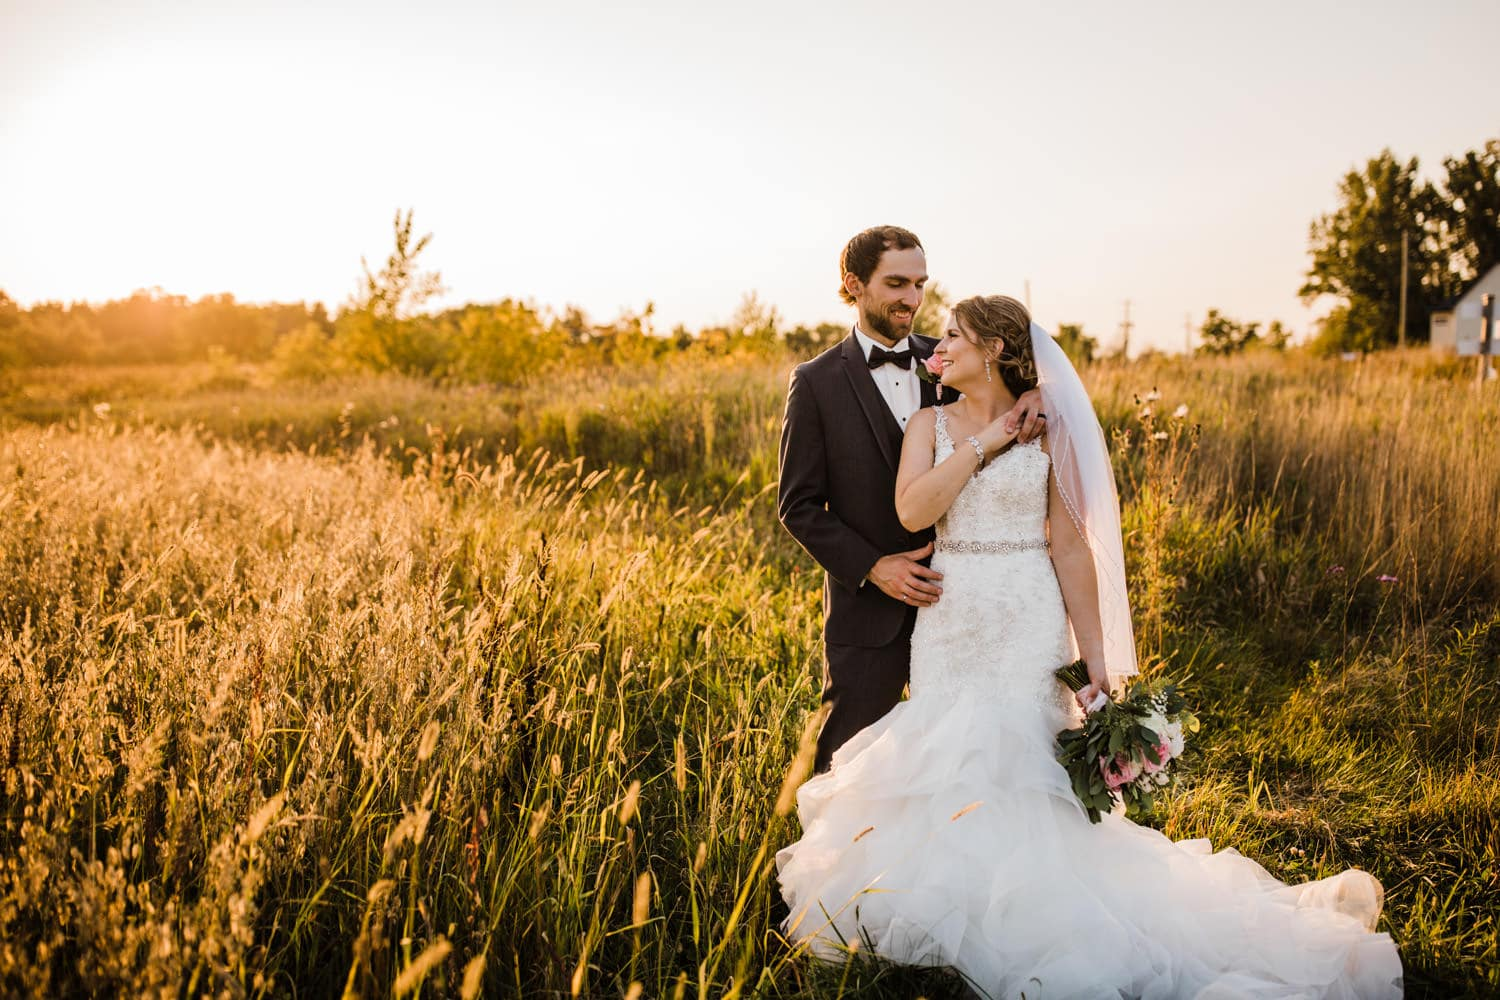 bride and groom laugh together in a field during golden hour